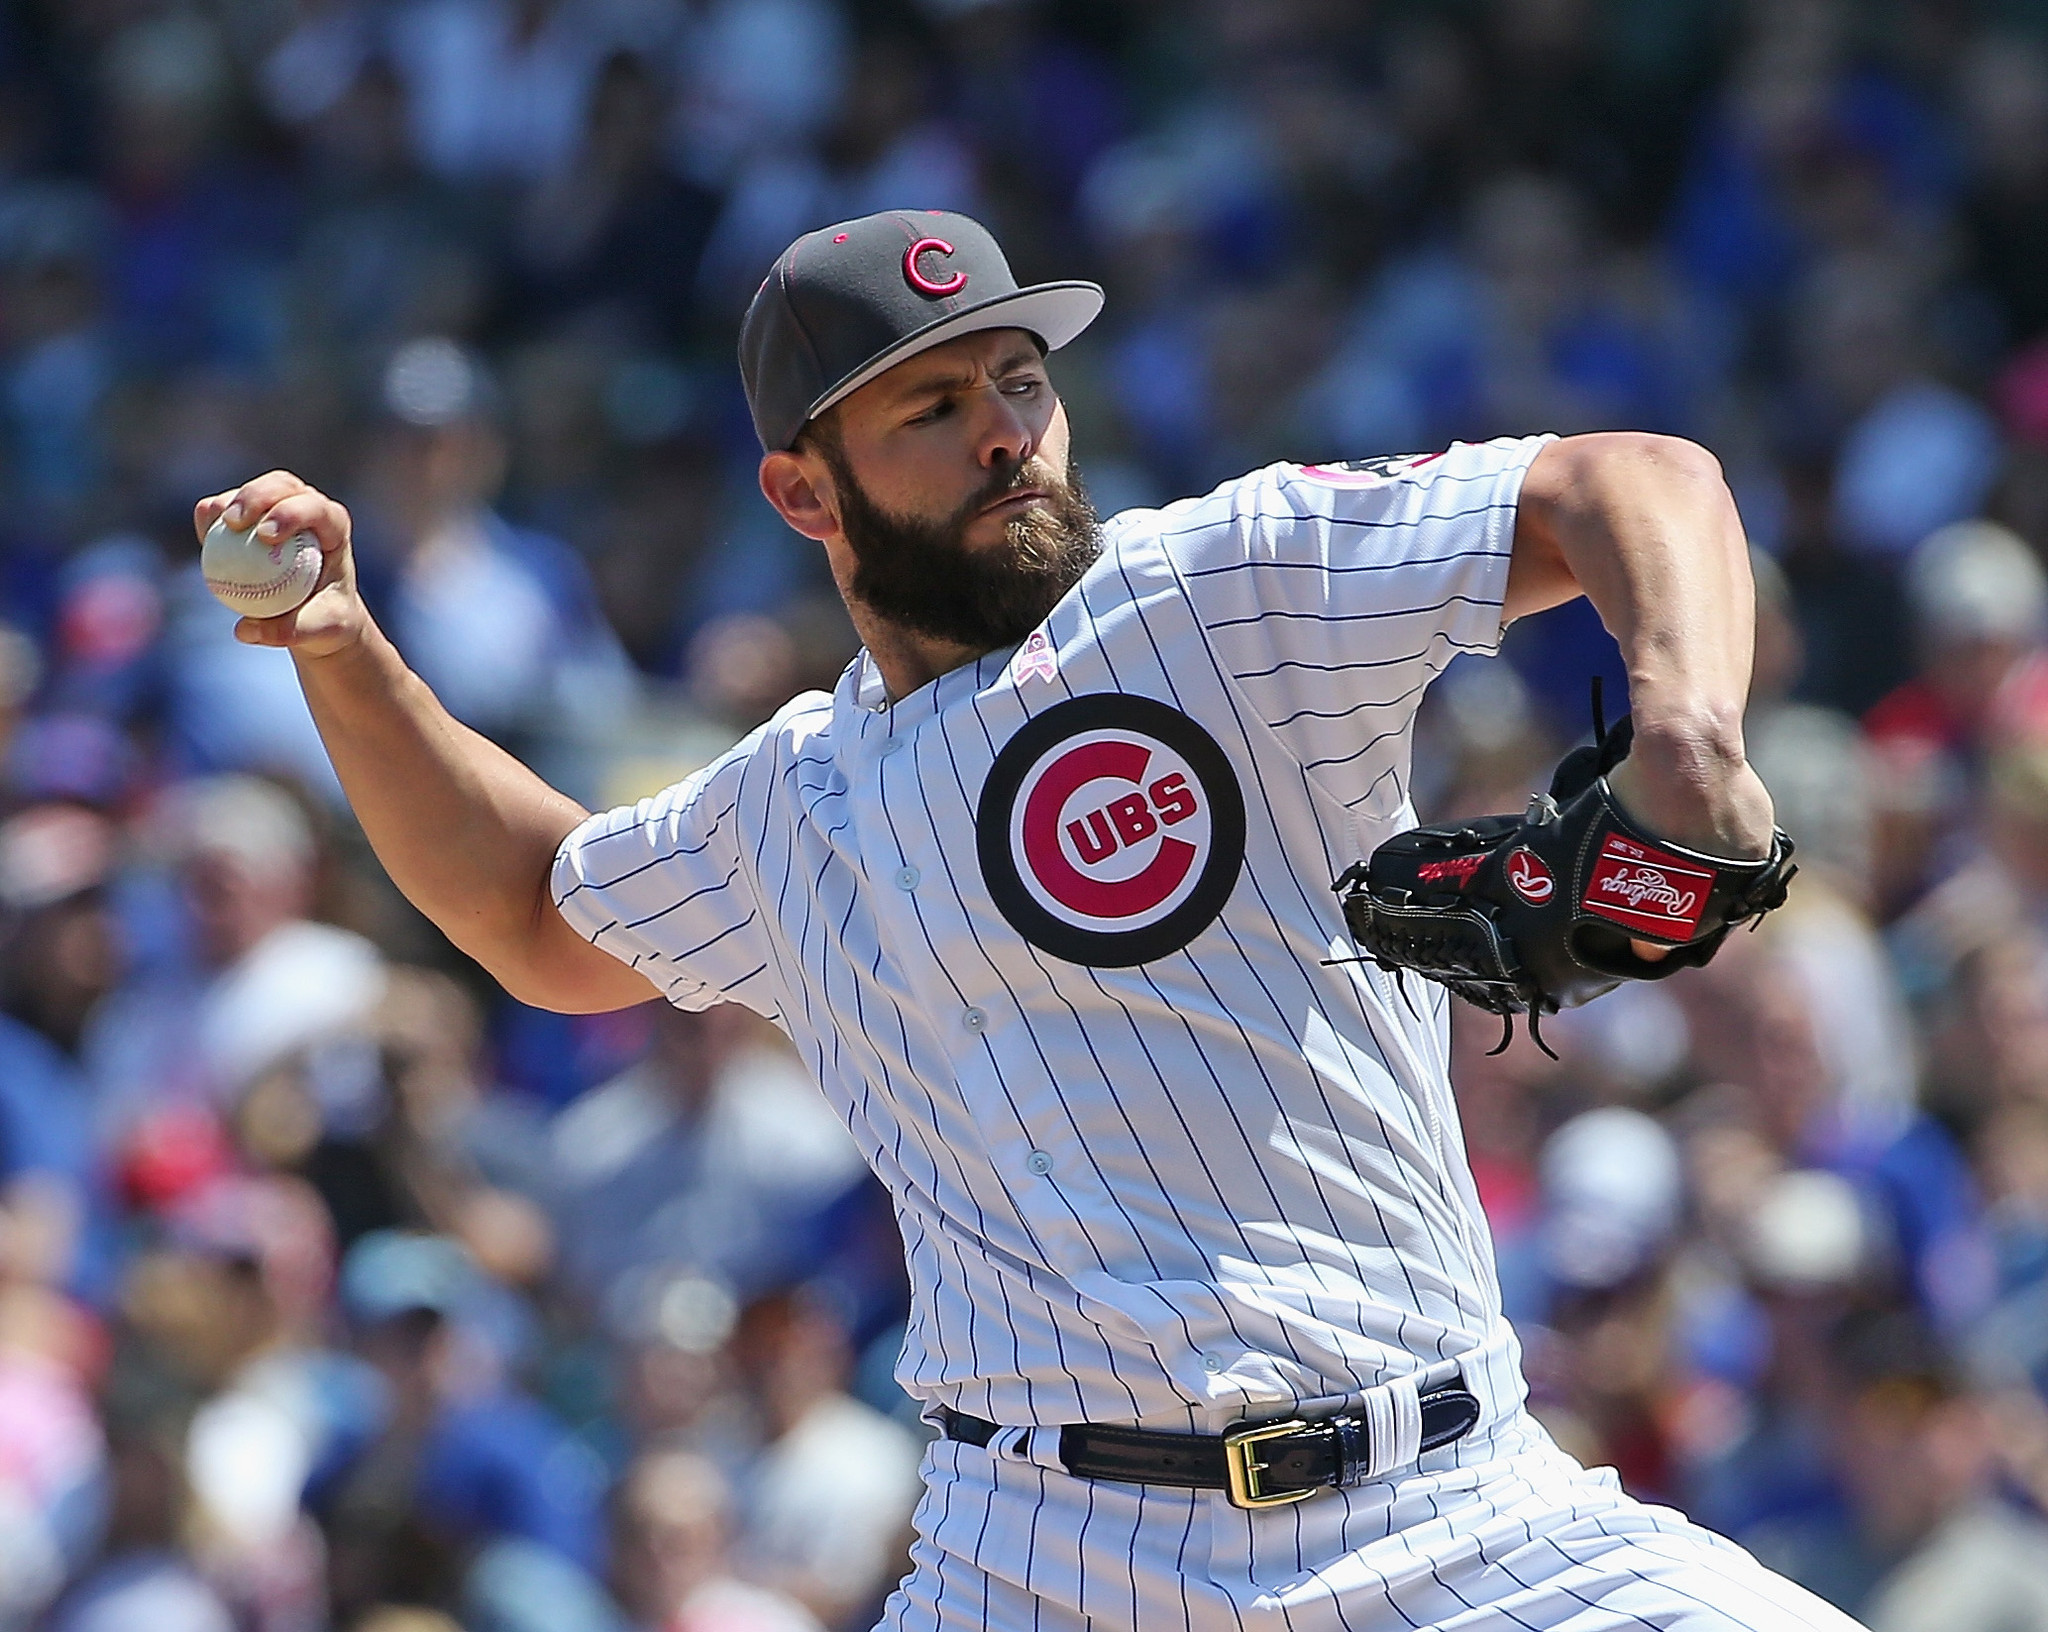 Jake Arrieta seeks win-win situation with Cubs - Chicago ...